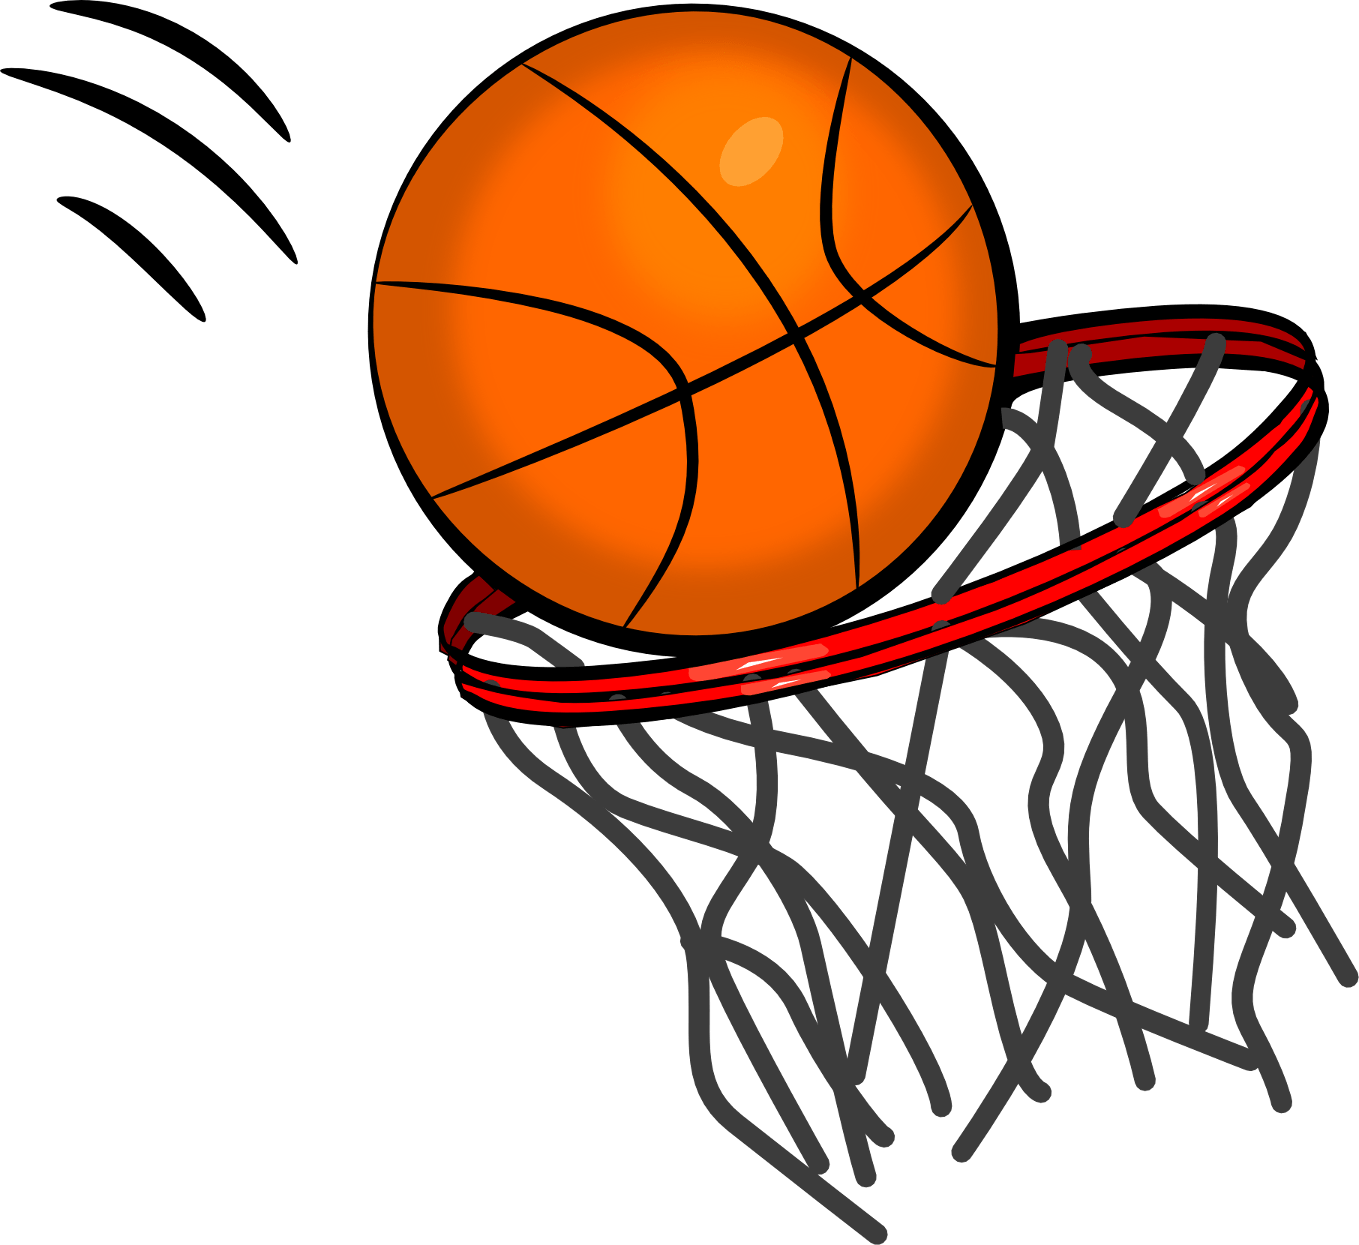 Fee Basketball Png - Basketball Png (1024x938), Png Download